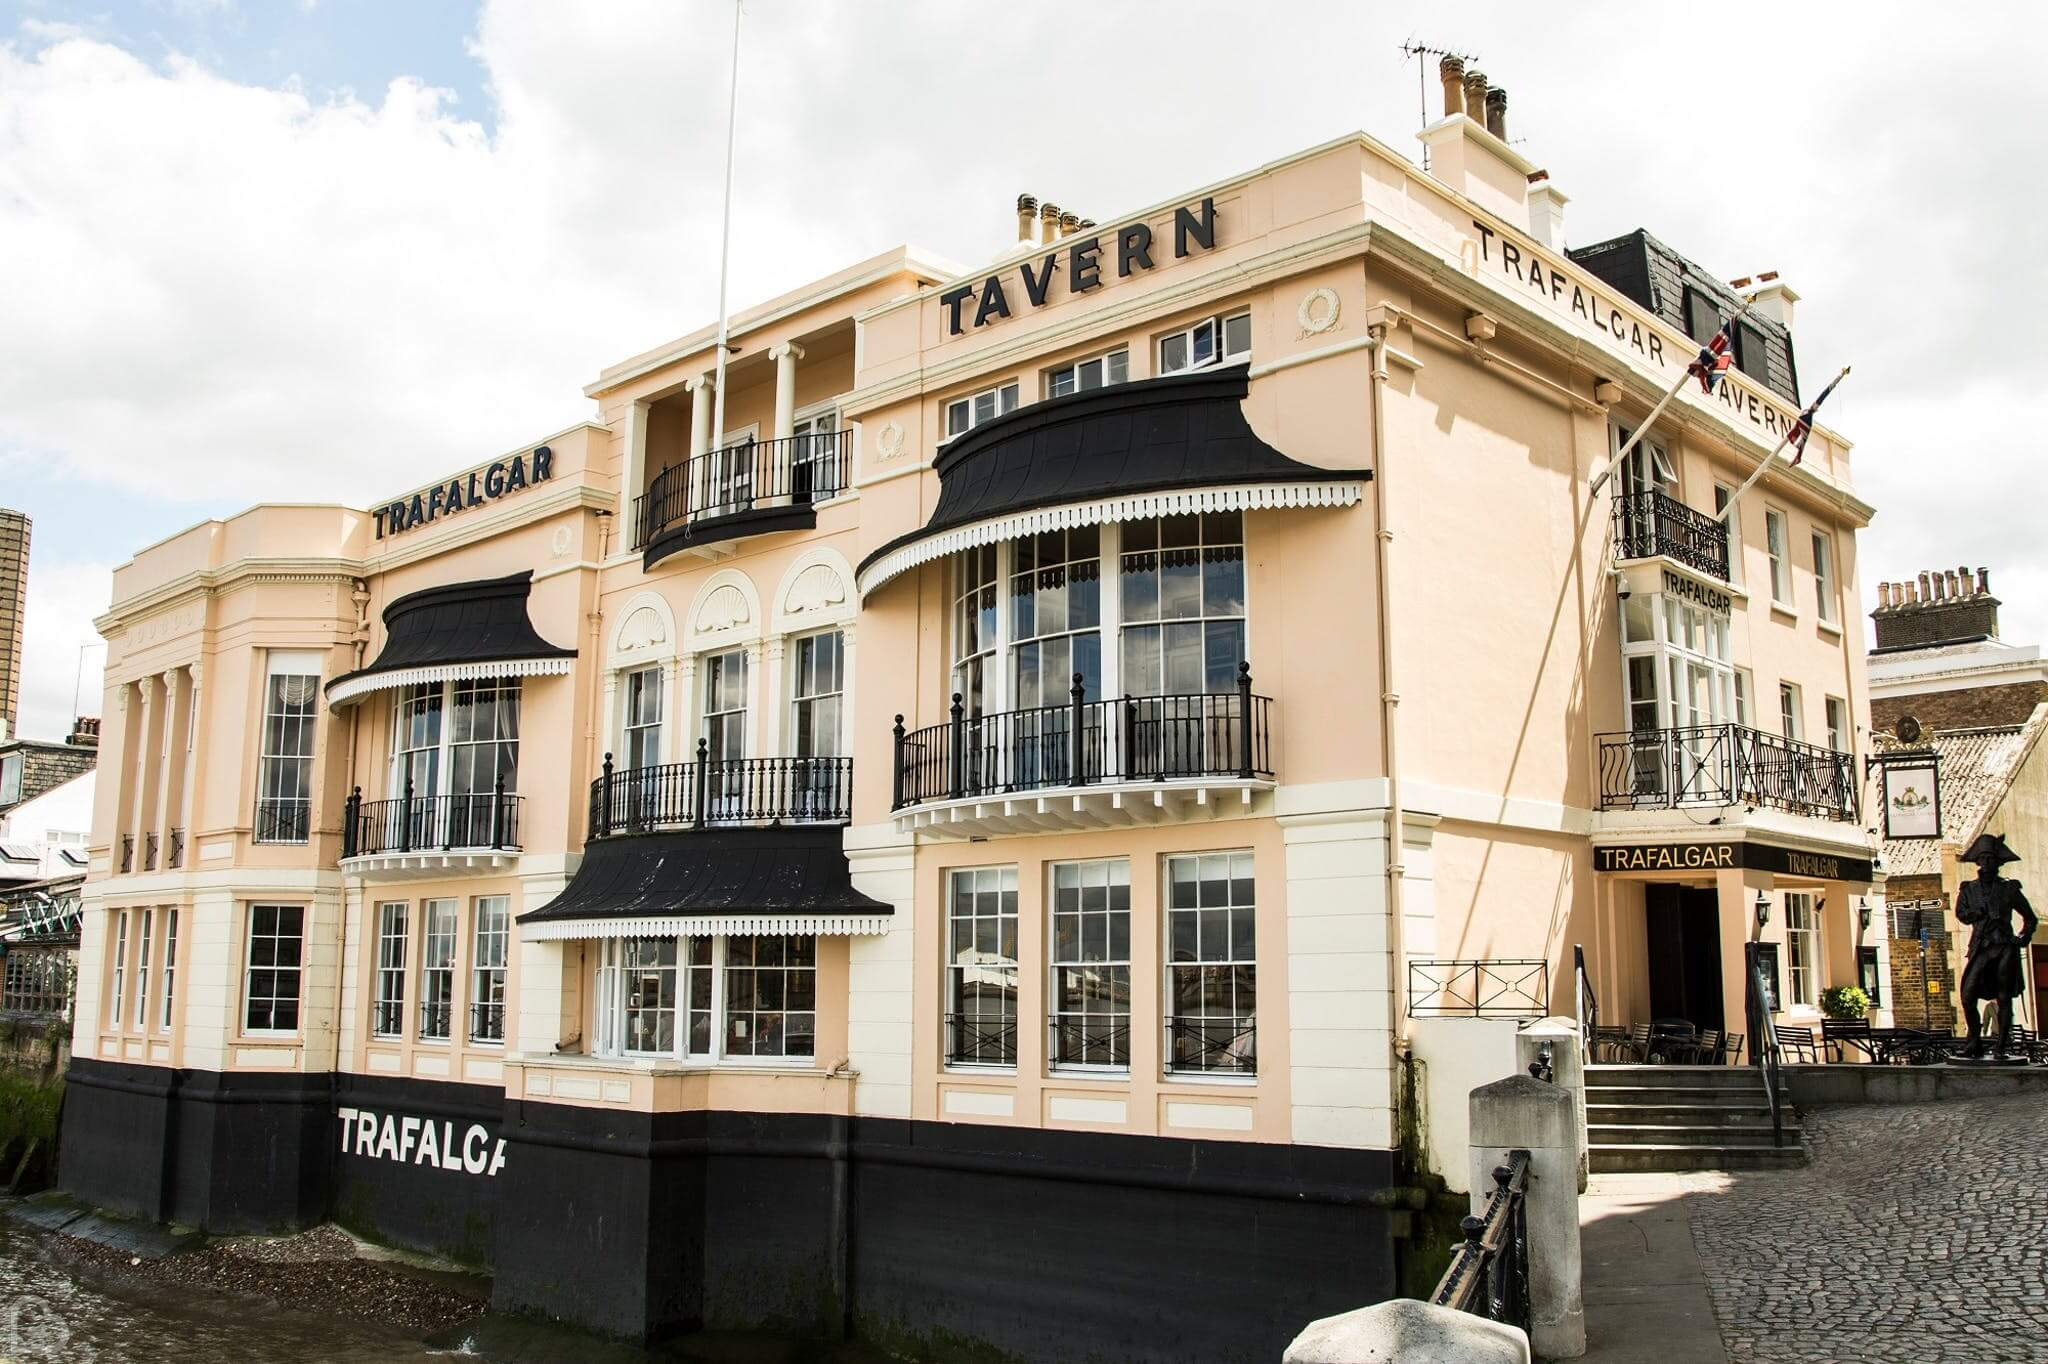 trafalgar tavern seen from the outside